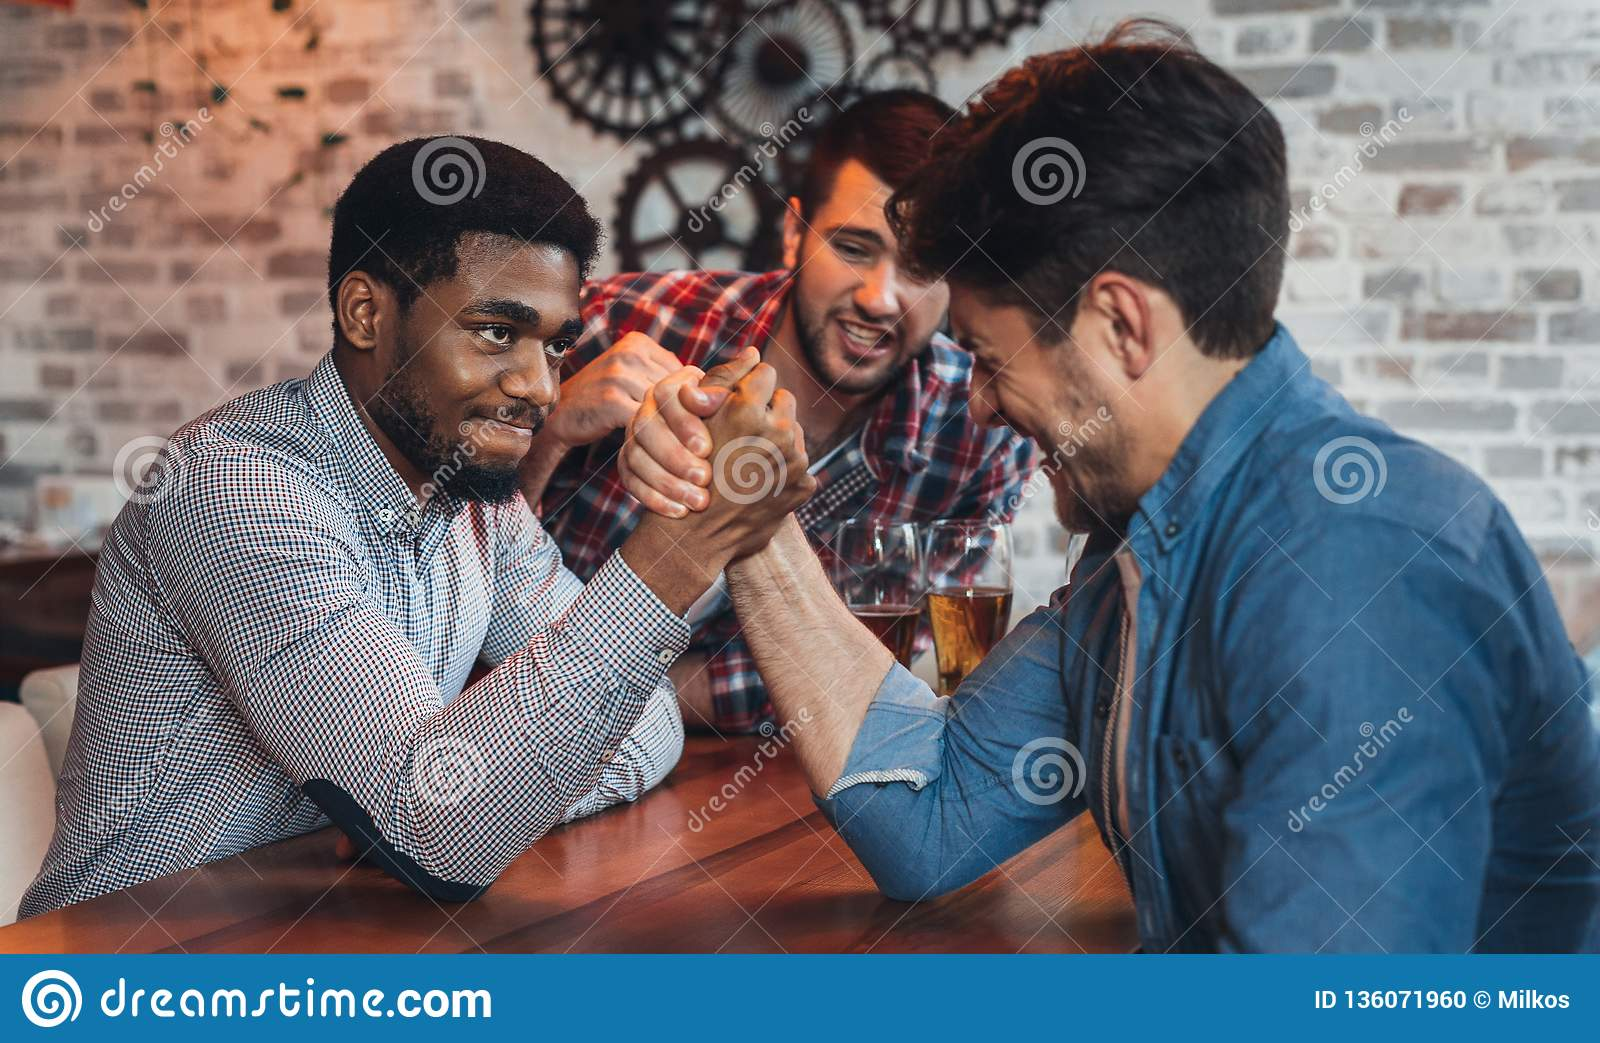 Male friends arm wrestling each other in bar